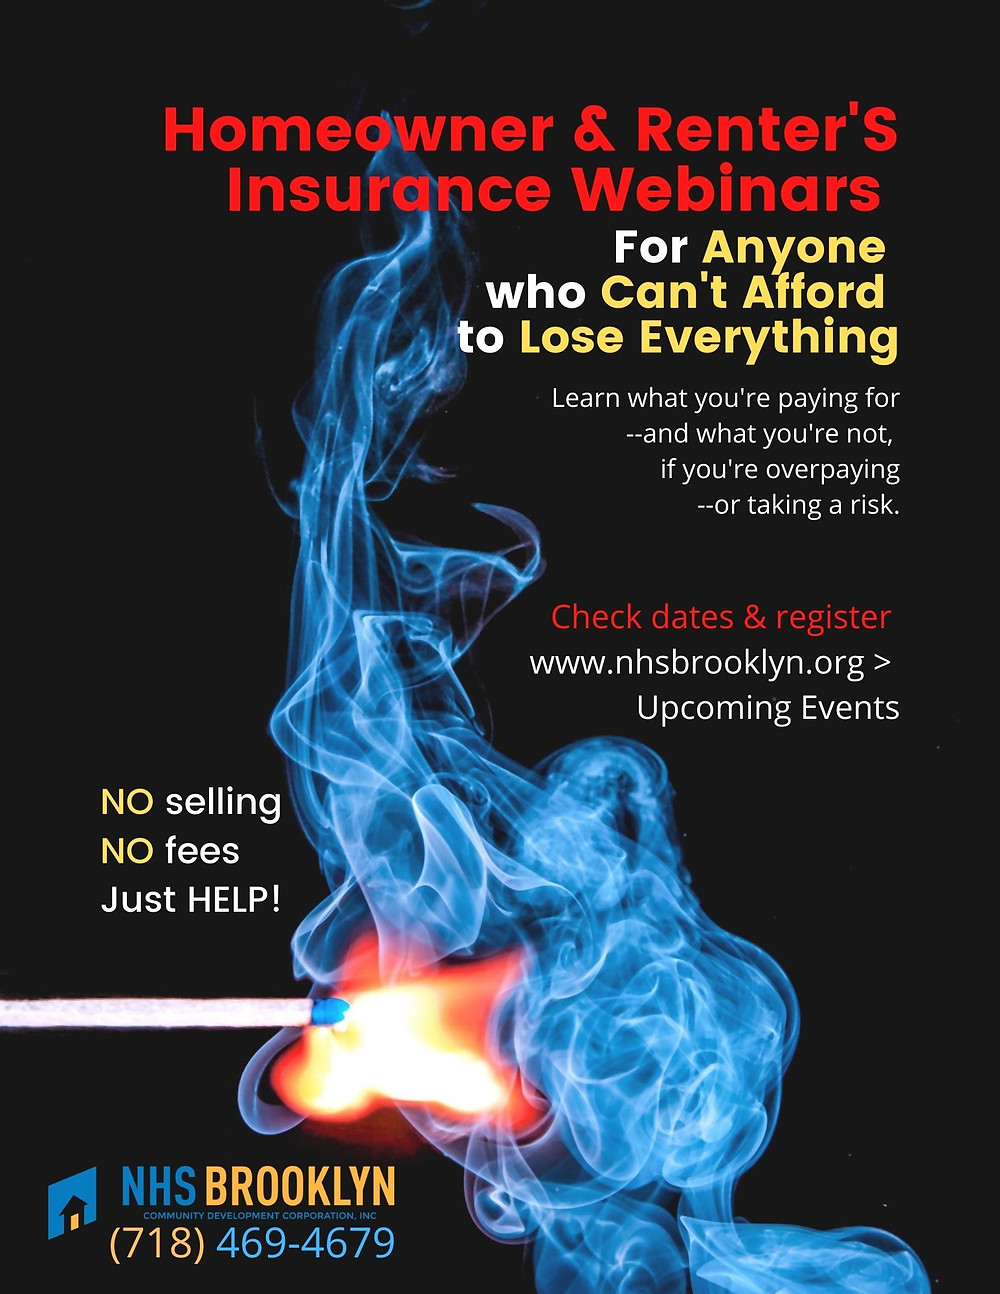 Homeowner & Renter's Insurance Webinars